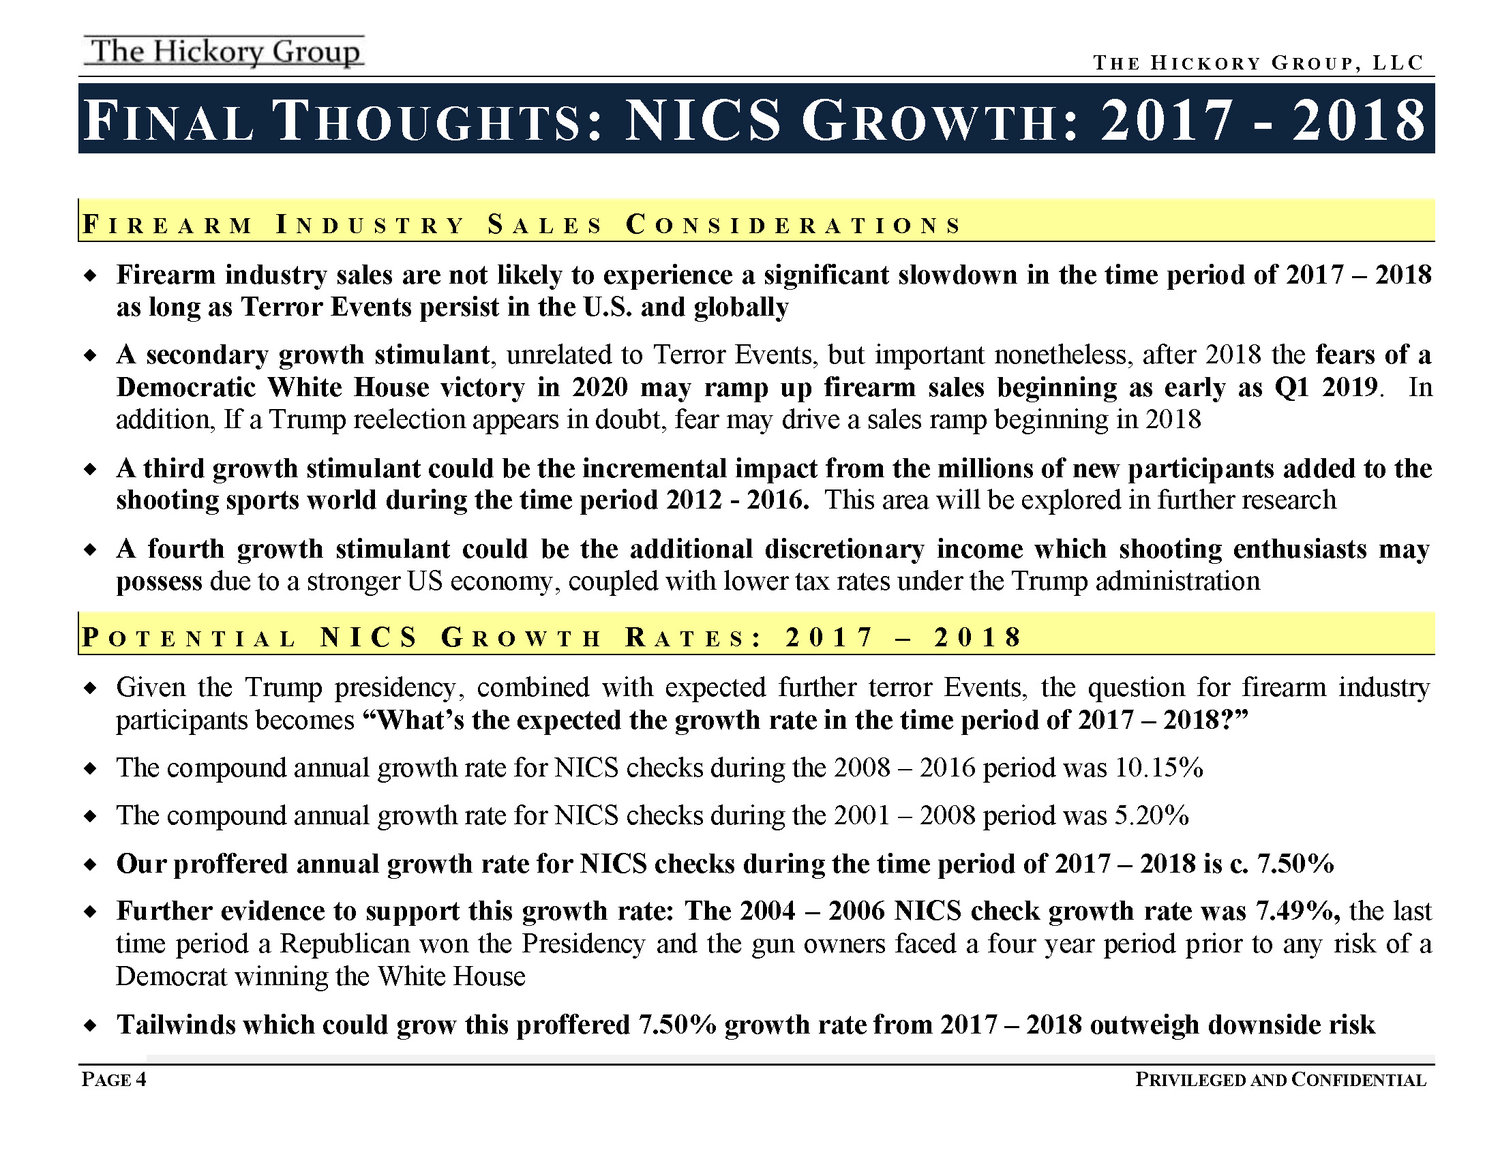 NICS+Checks+February+Forecast+FINAL+(27+February+2017)+Privileged+and+Confidential_Page_4.jpg